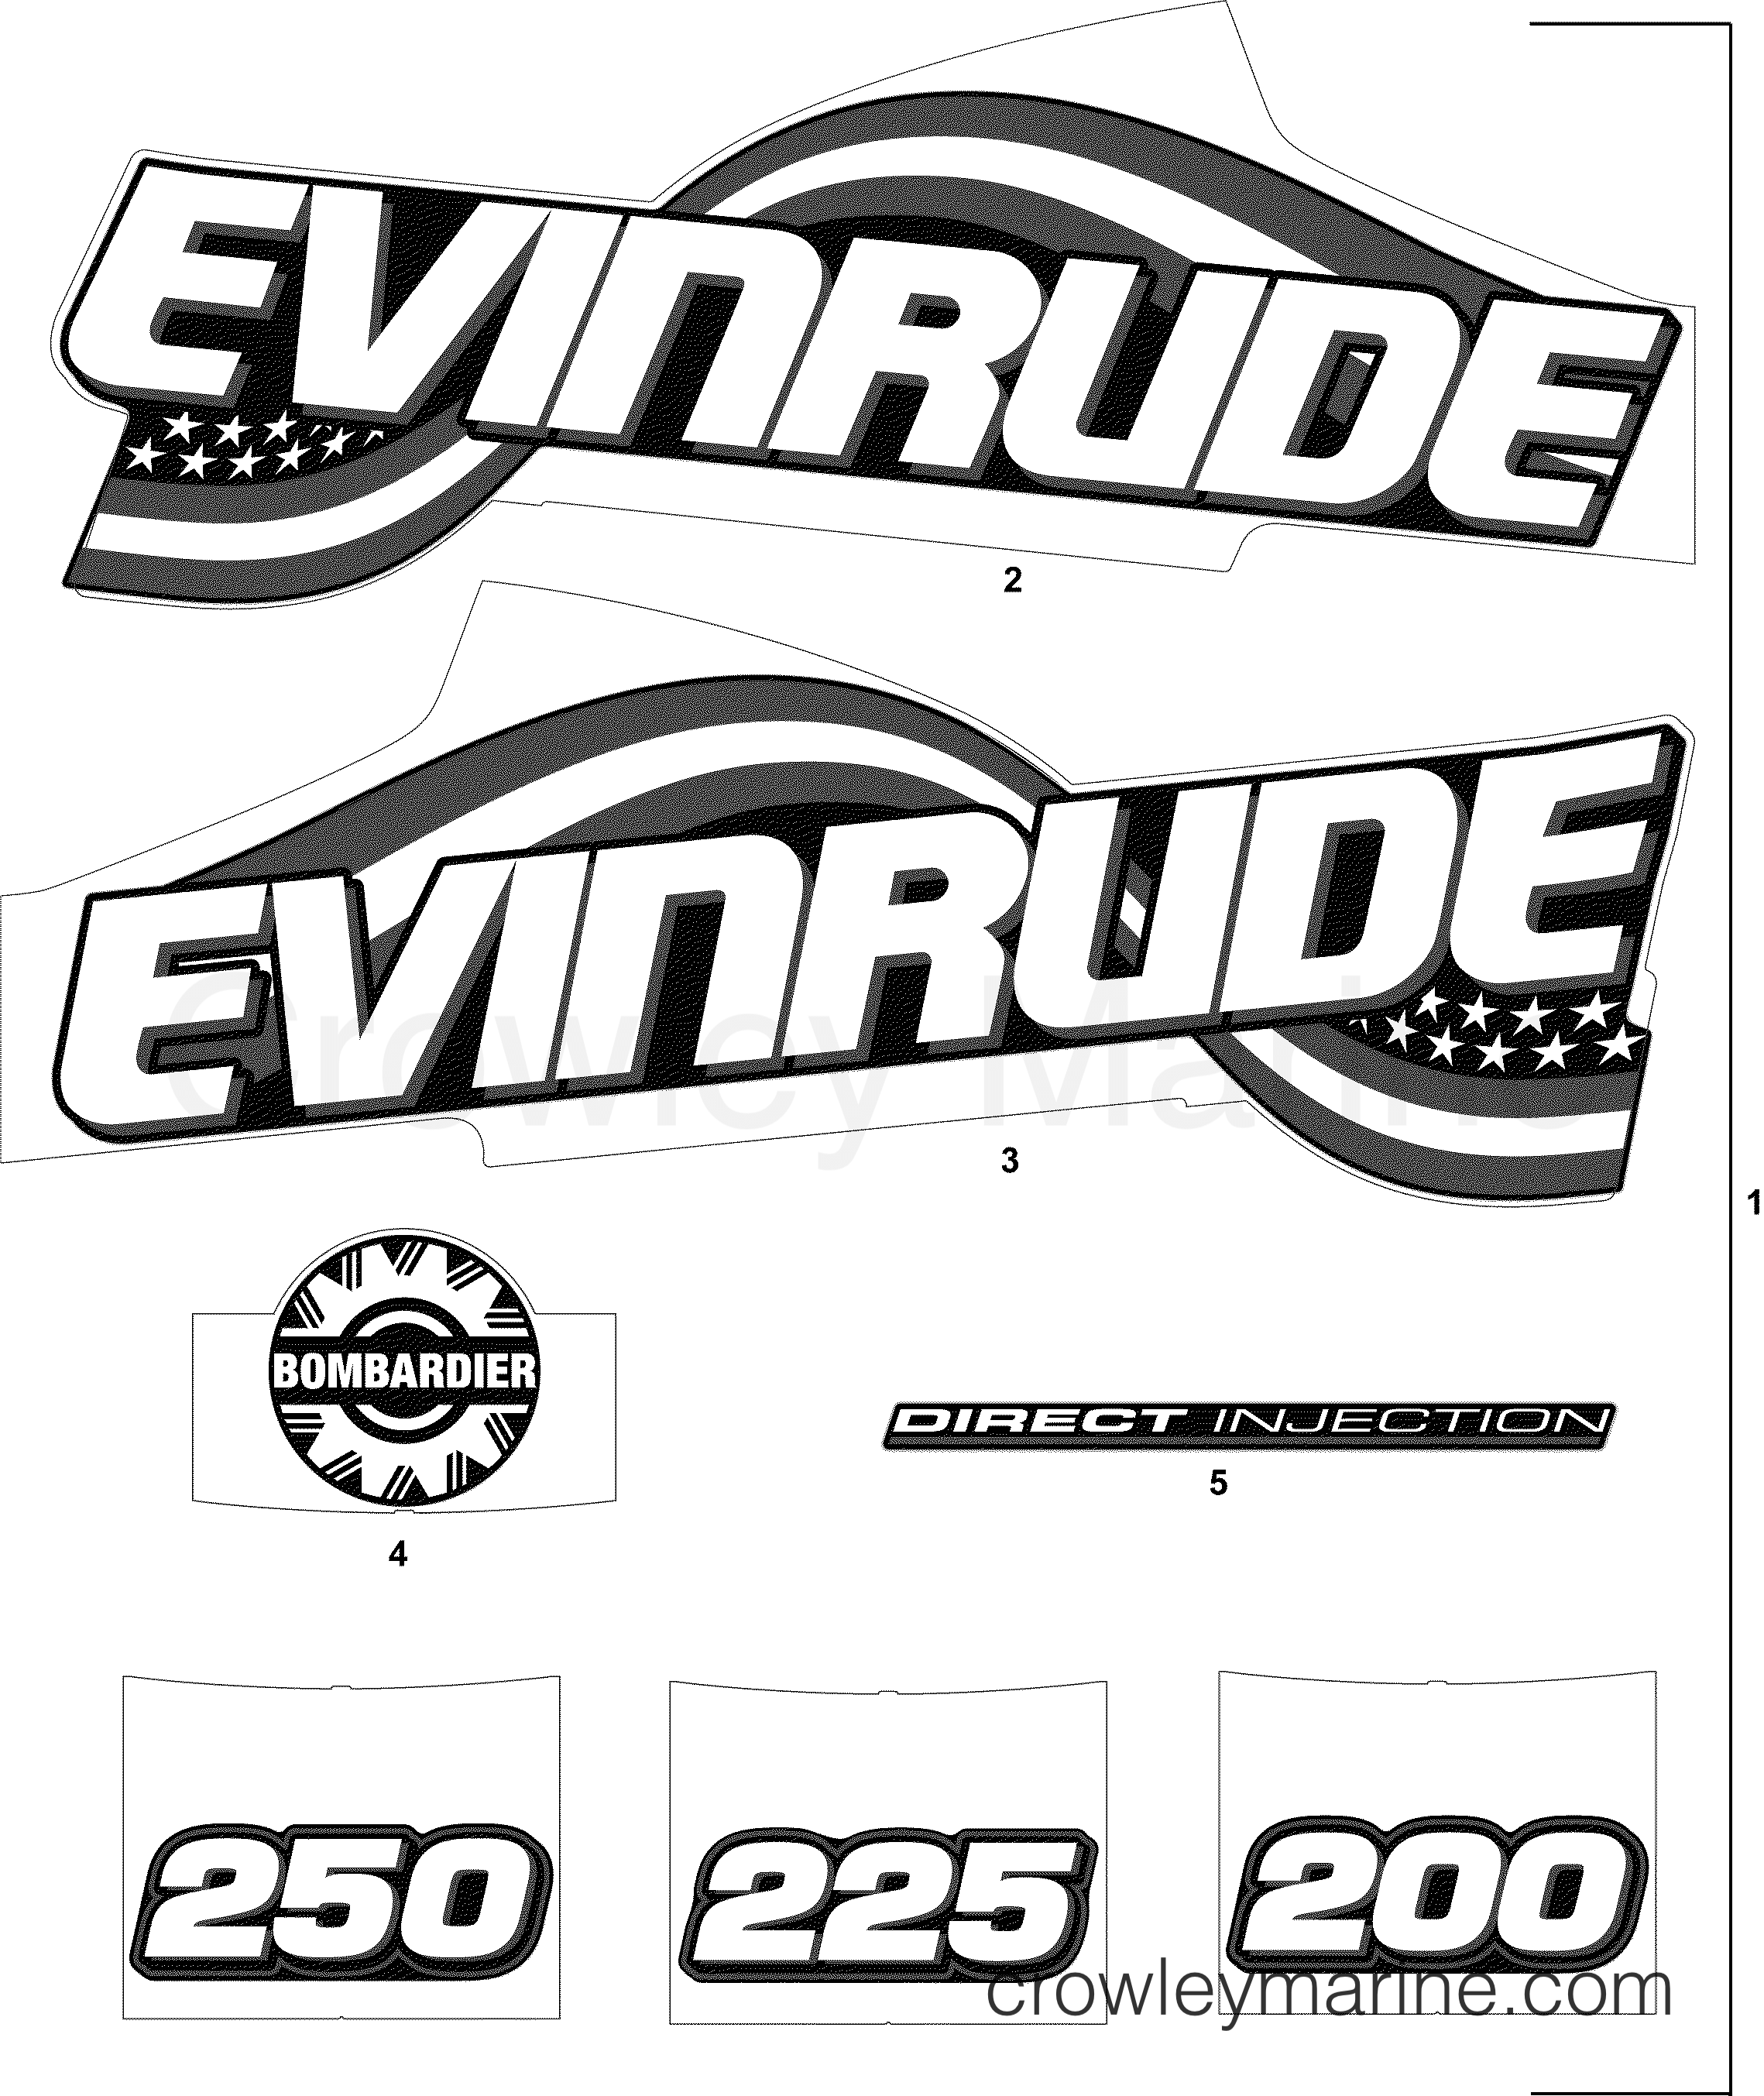 2004 Evinrude Outboards 200 - E200FCXSRB DECAL ACCESSORY SET - BLUE MODELS section